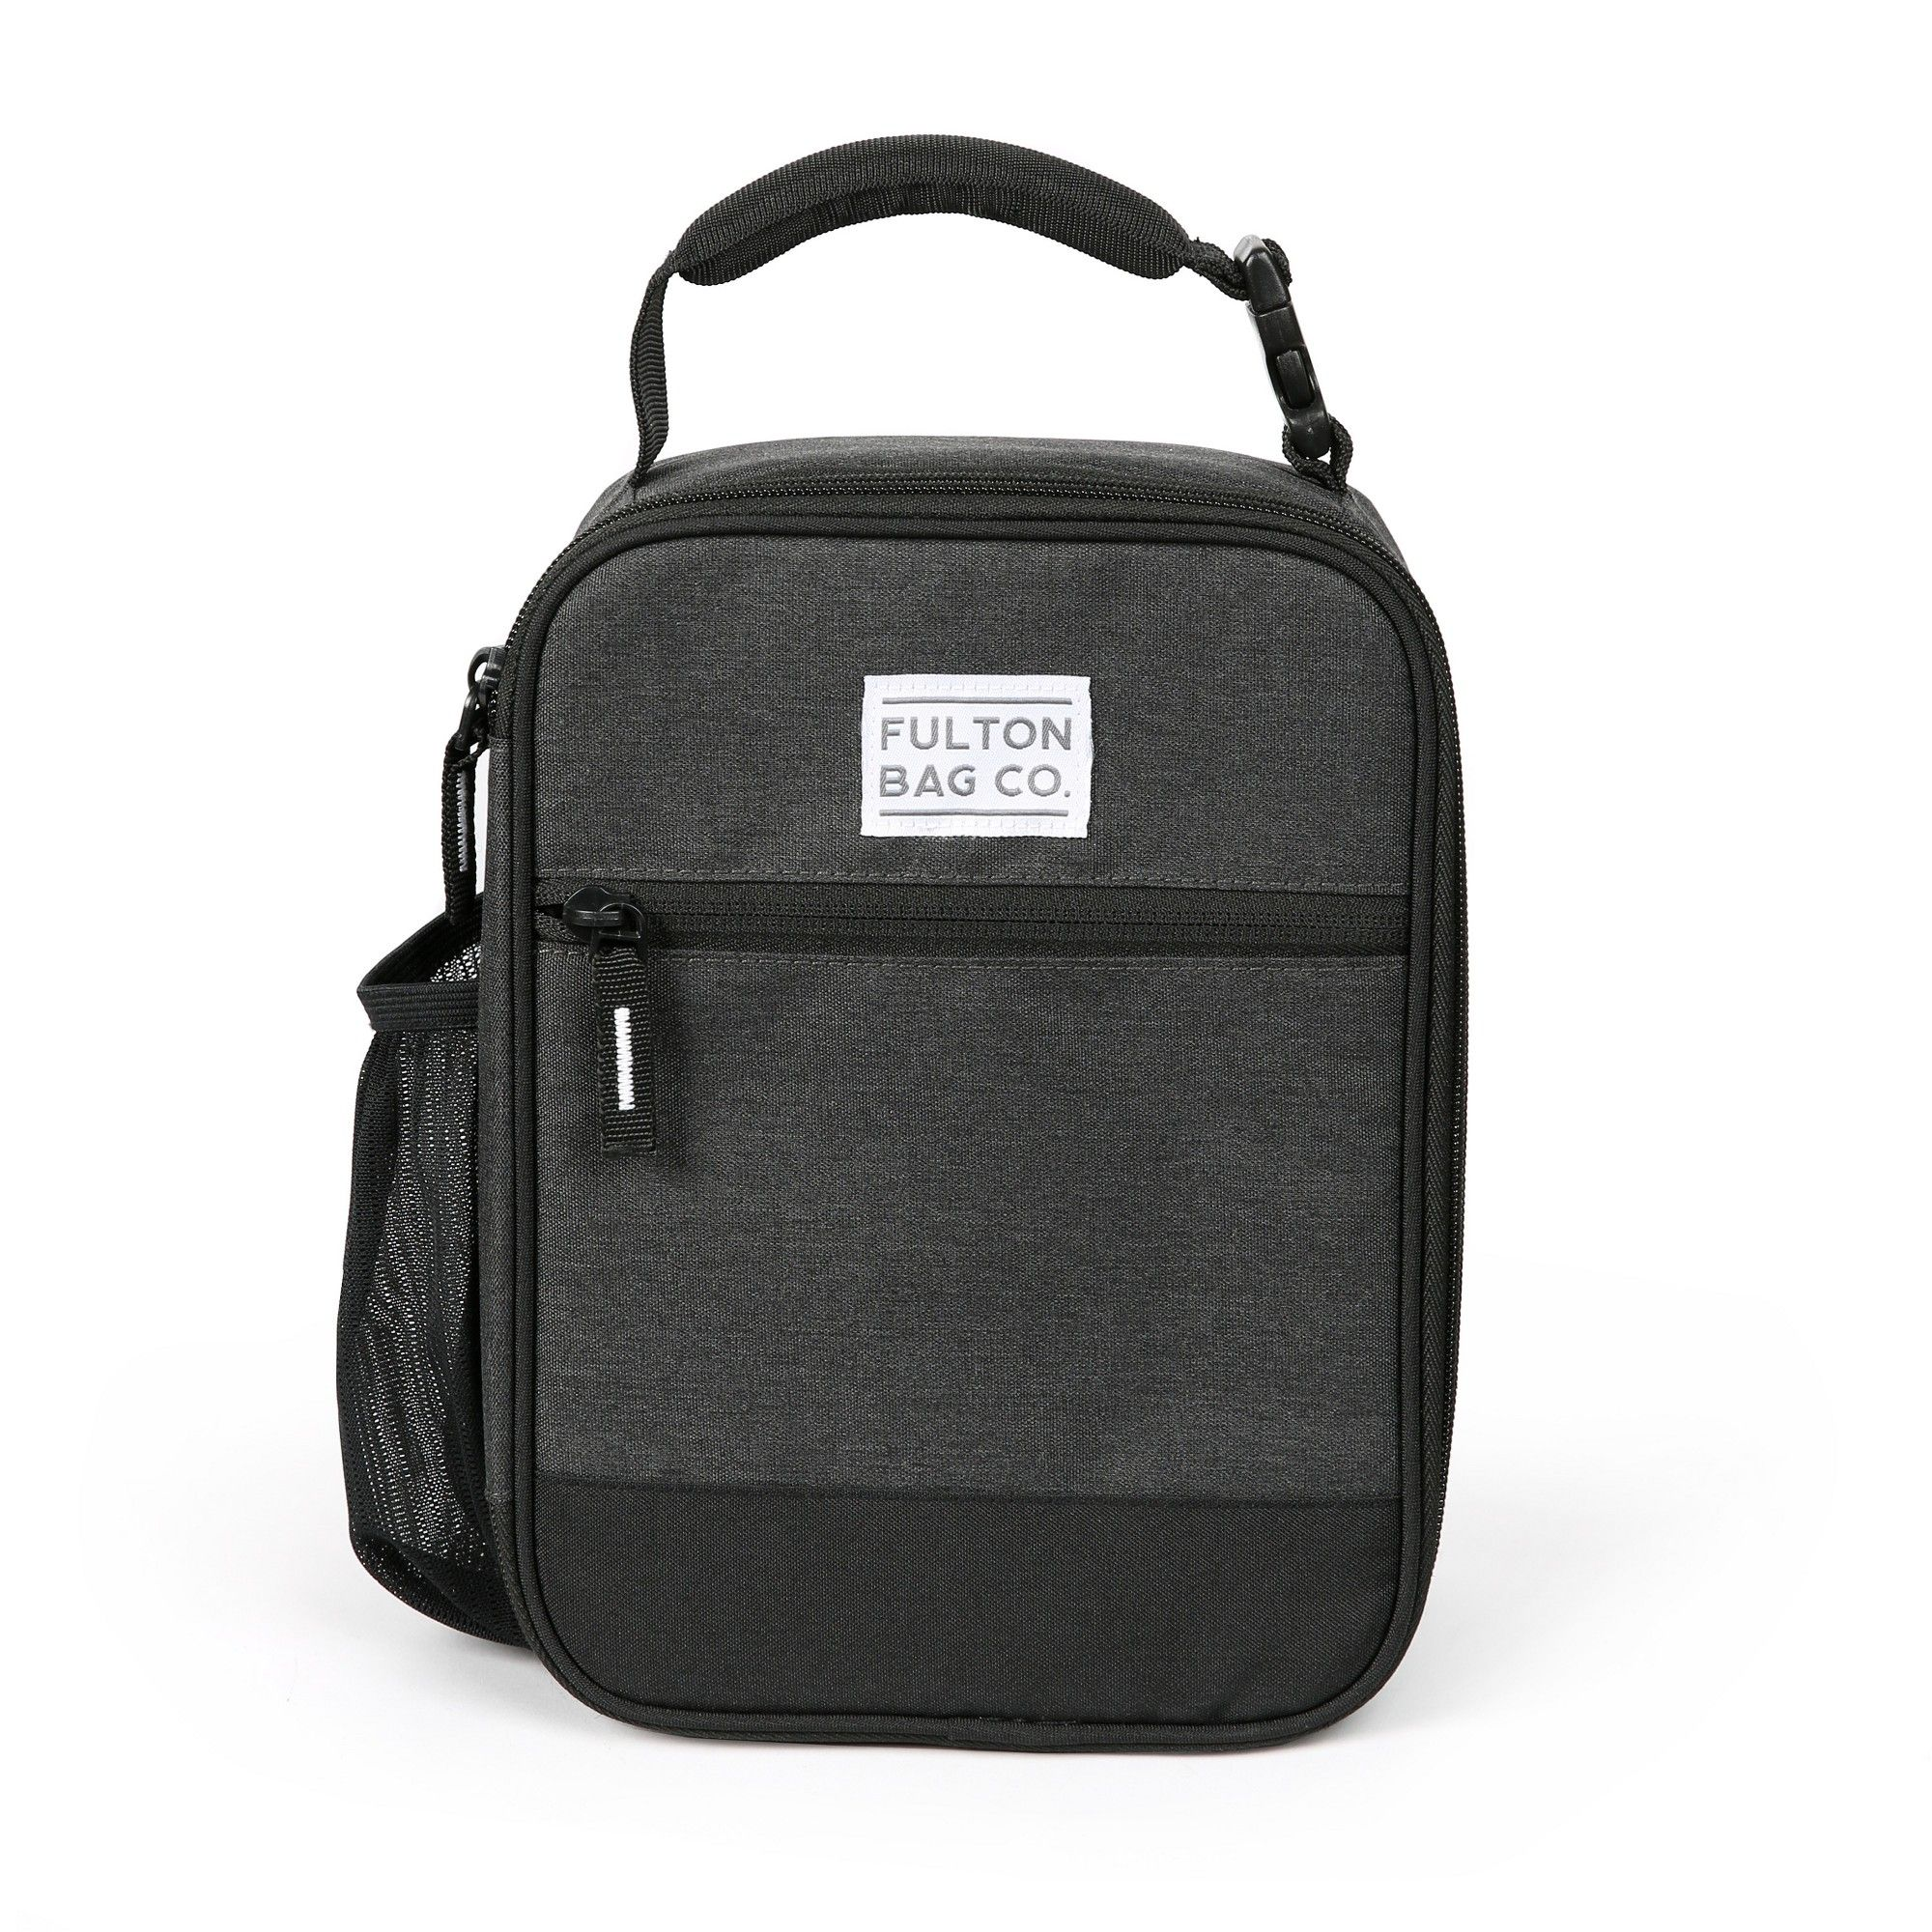 7df79023457d Fulton Bag Co. Upright Lunch Bag - Black in 2019 | Products | Mens ...